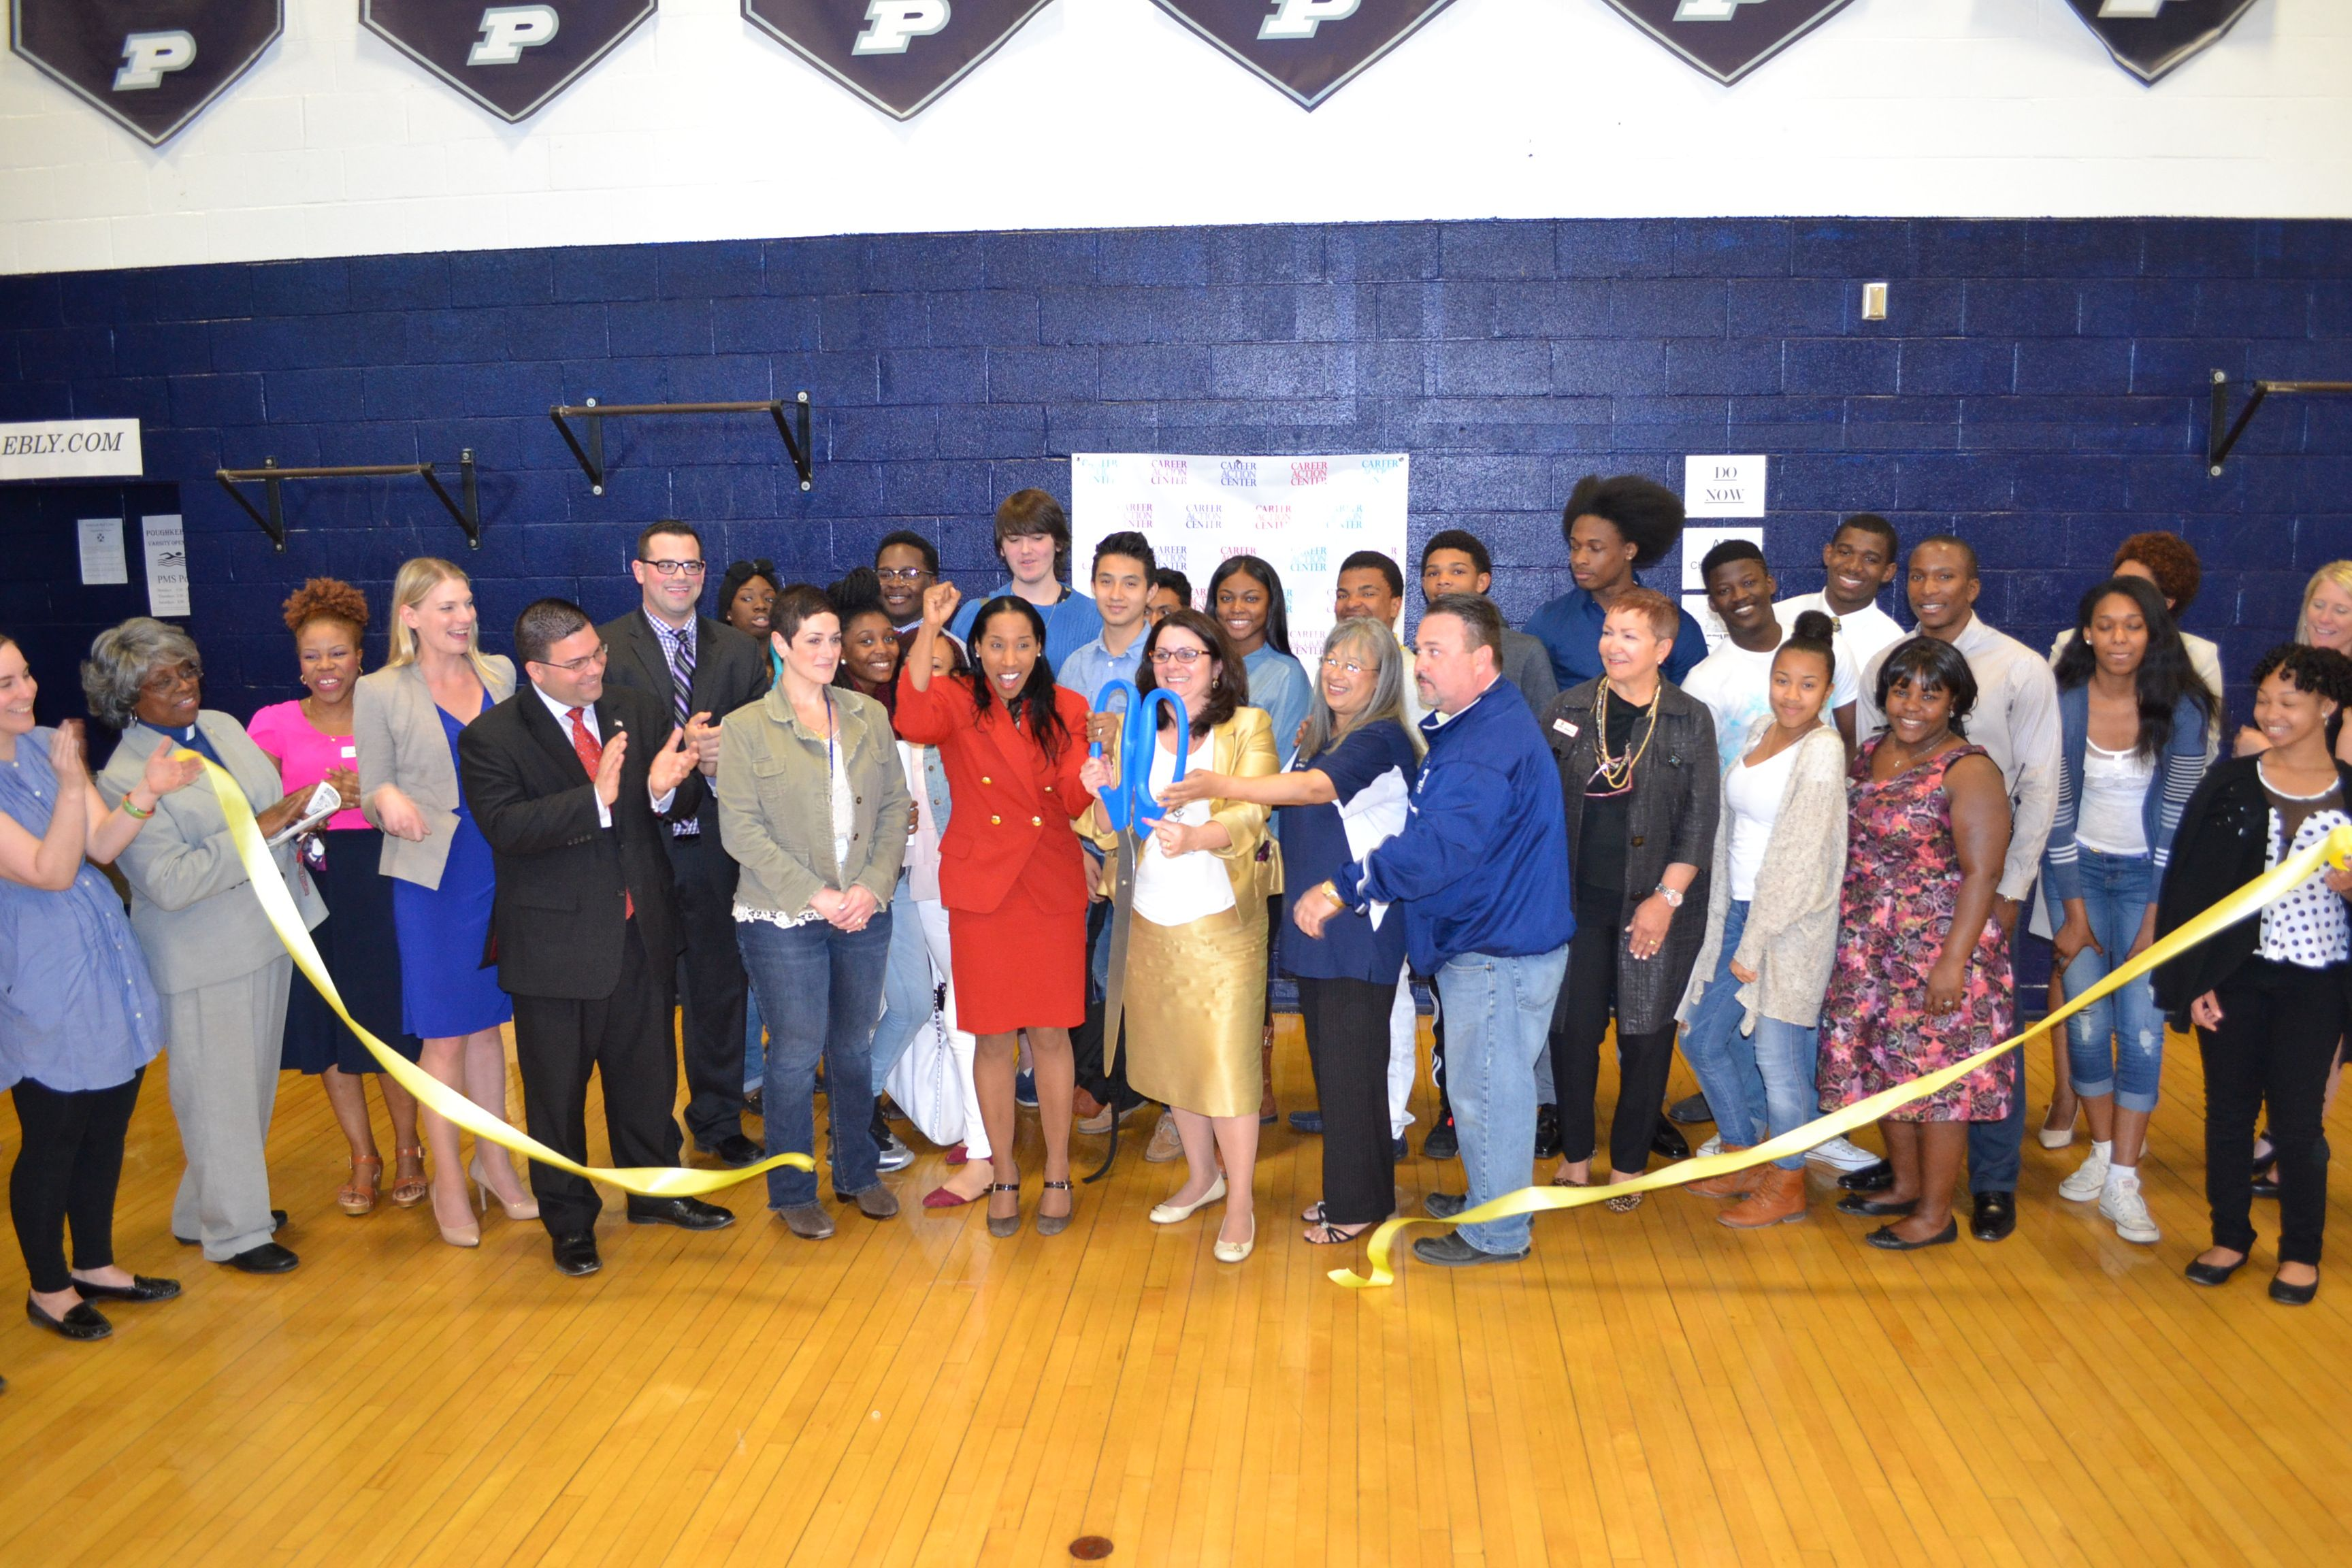 Congratulations to Poughkeepsie High School on the opening of its Career Fair!